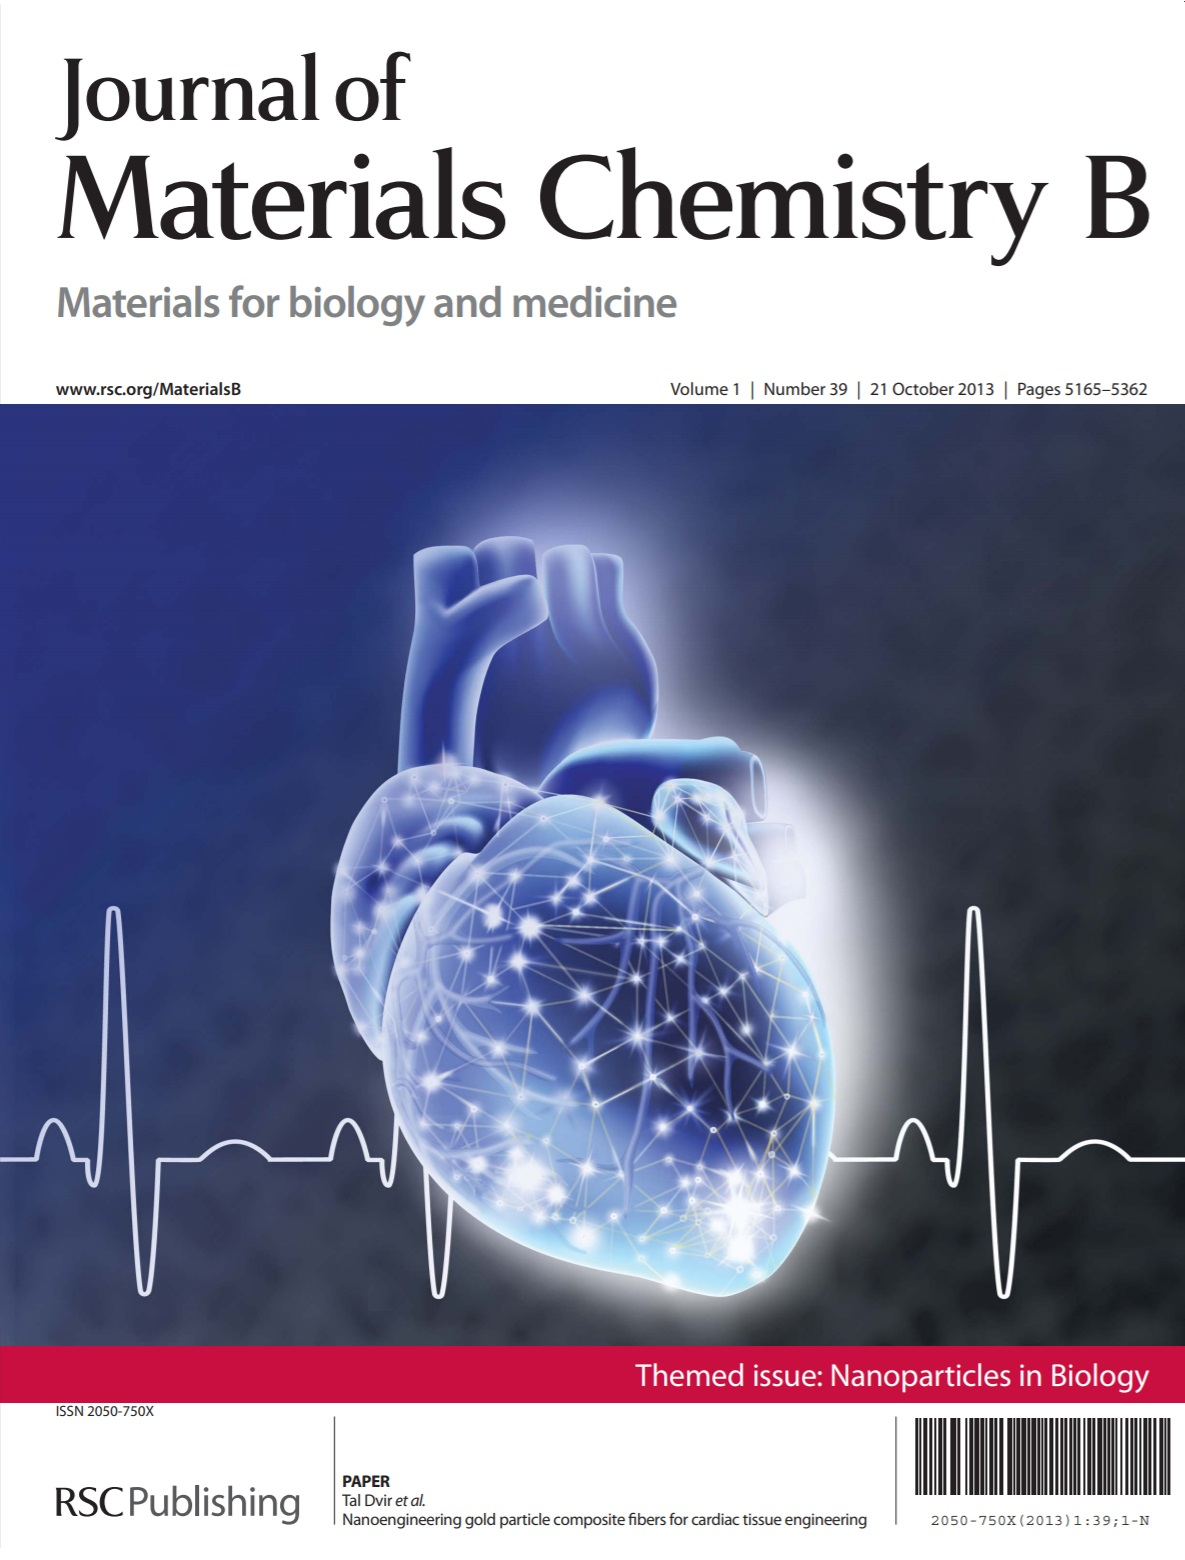 Nanoengineering gold particle composite fibers for cardiac tissue engineering.